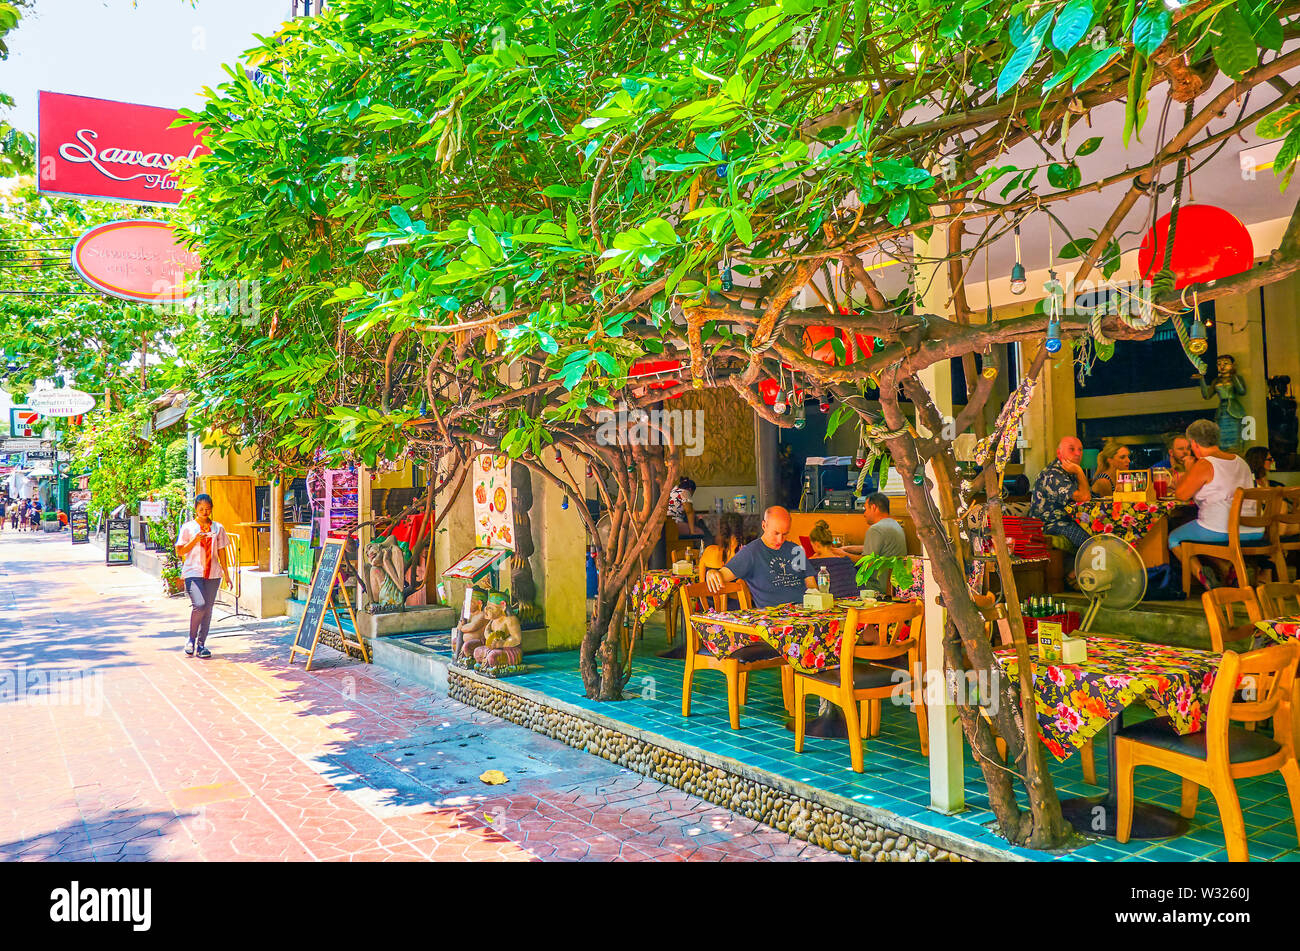 BANGKOK, THAILAND - APRIL 22, 2019: The shaddy terrace of restaurant with twisted tree at the facade, on April 22 in Bangkok - Stock Image